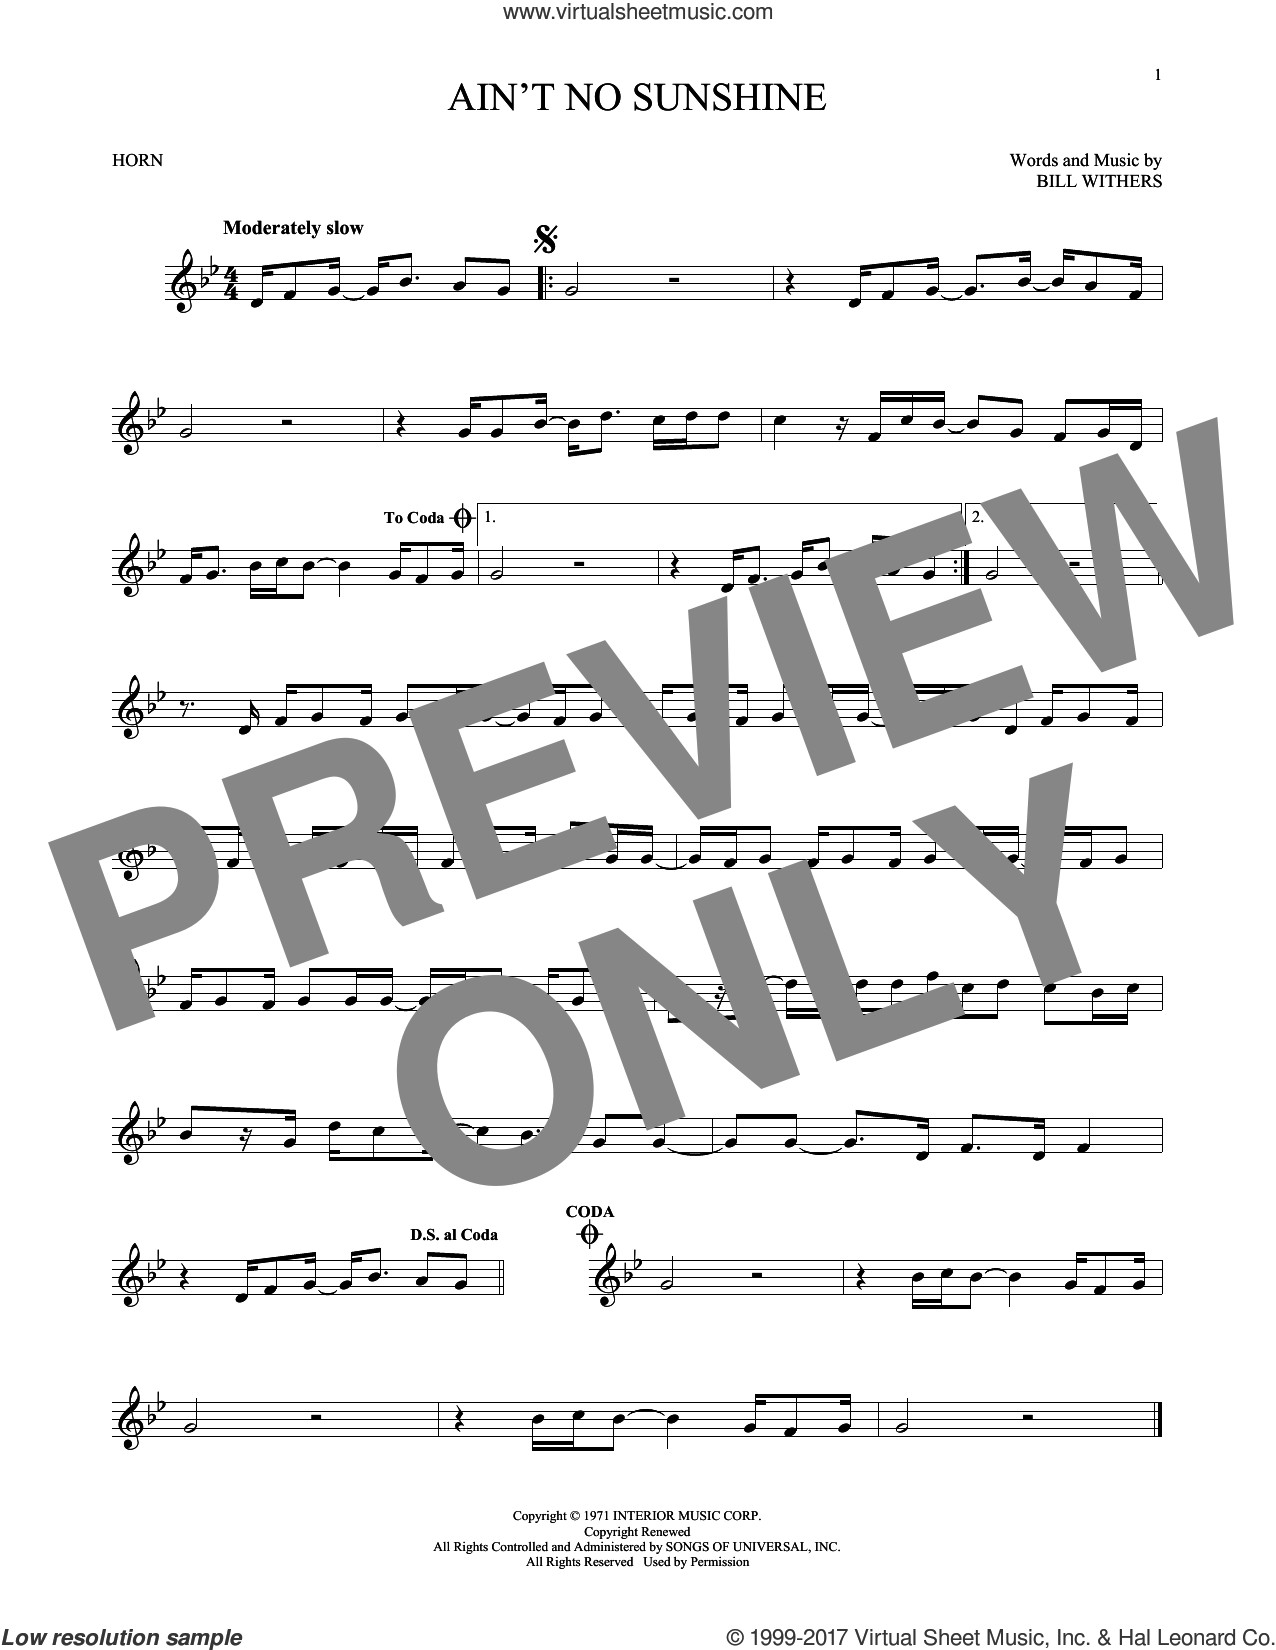 Ain't No Sunshine sheet music for horn solo by Bill Withers, intermediate skill level